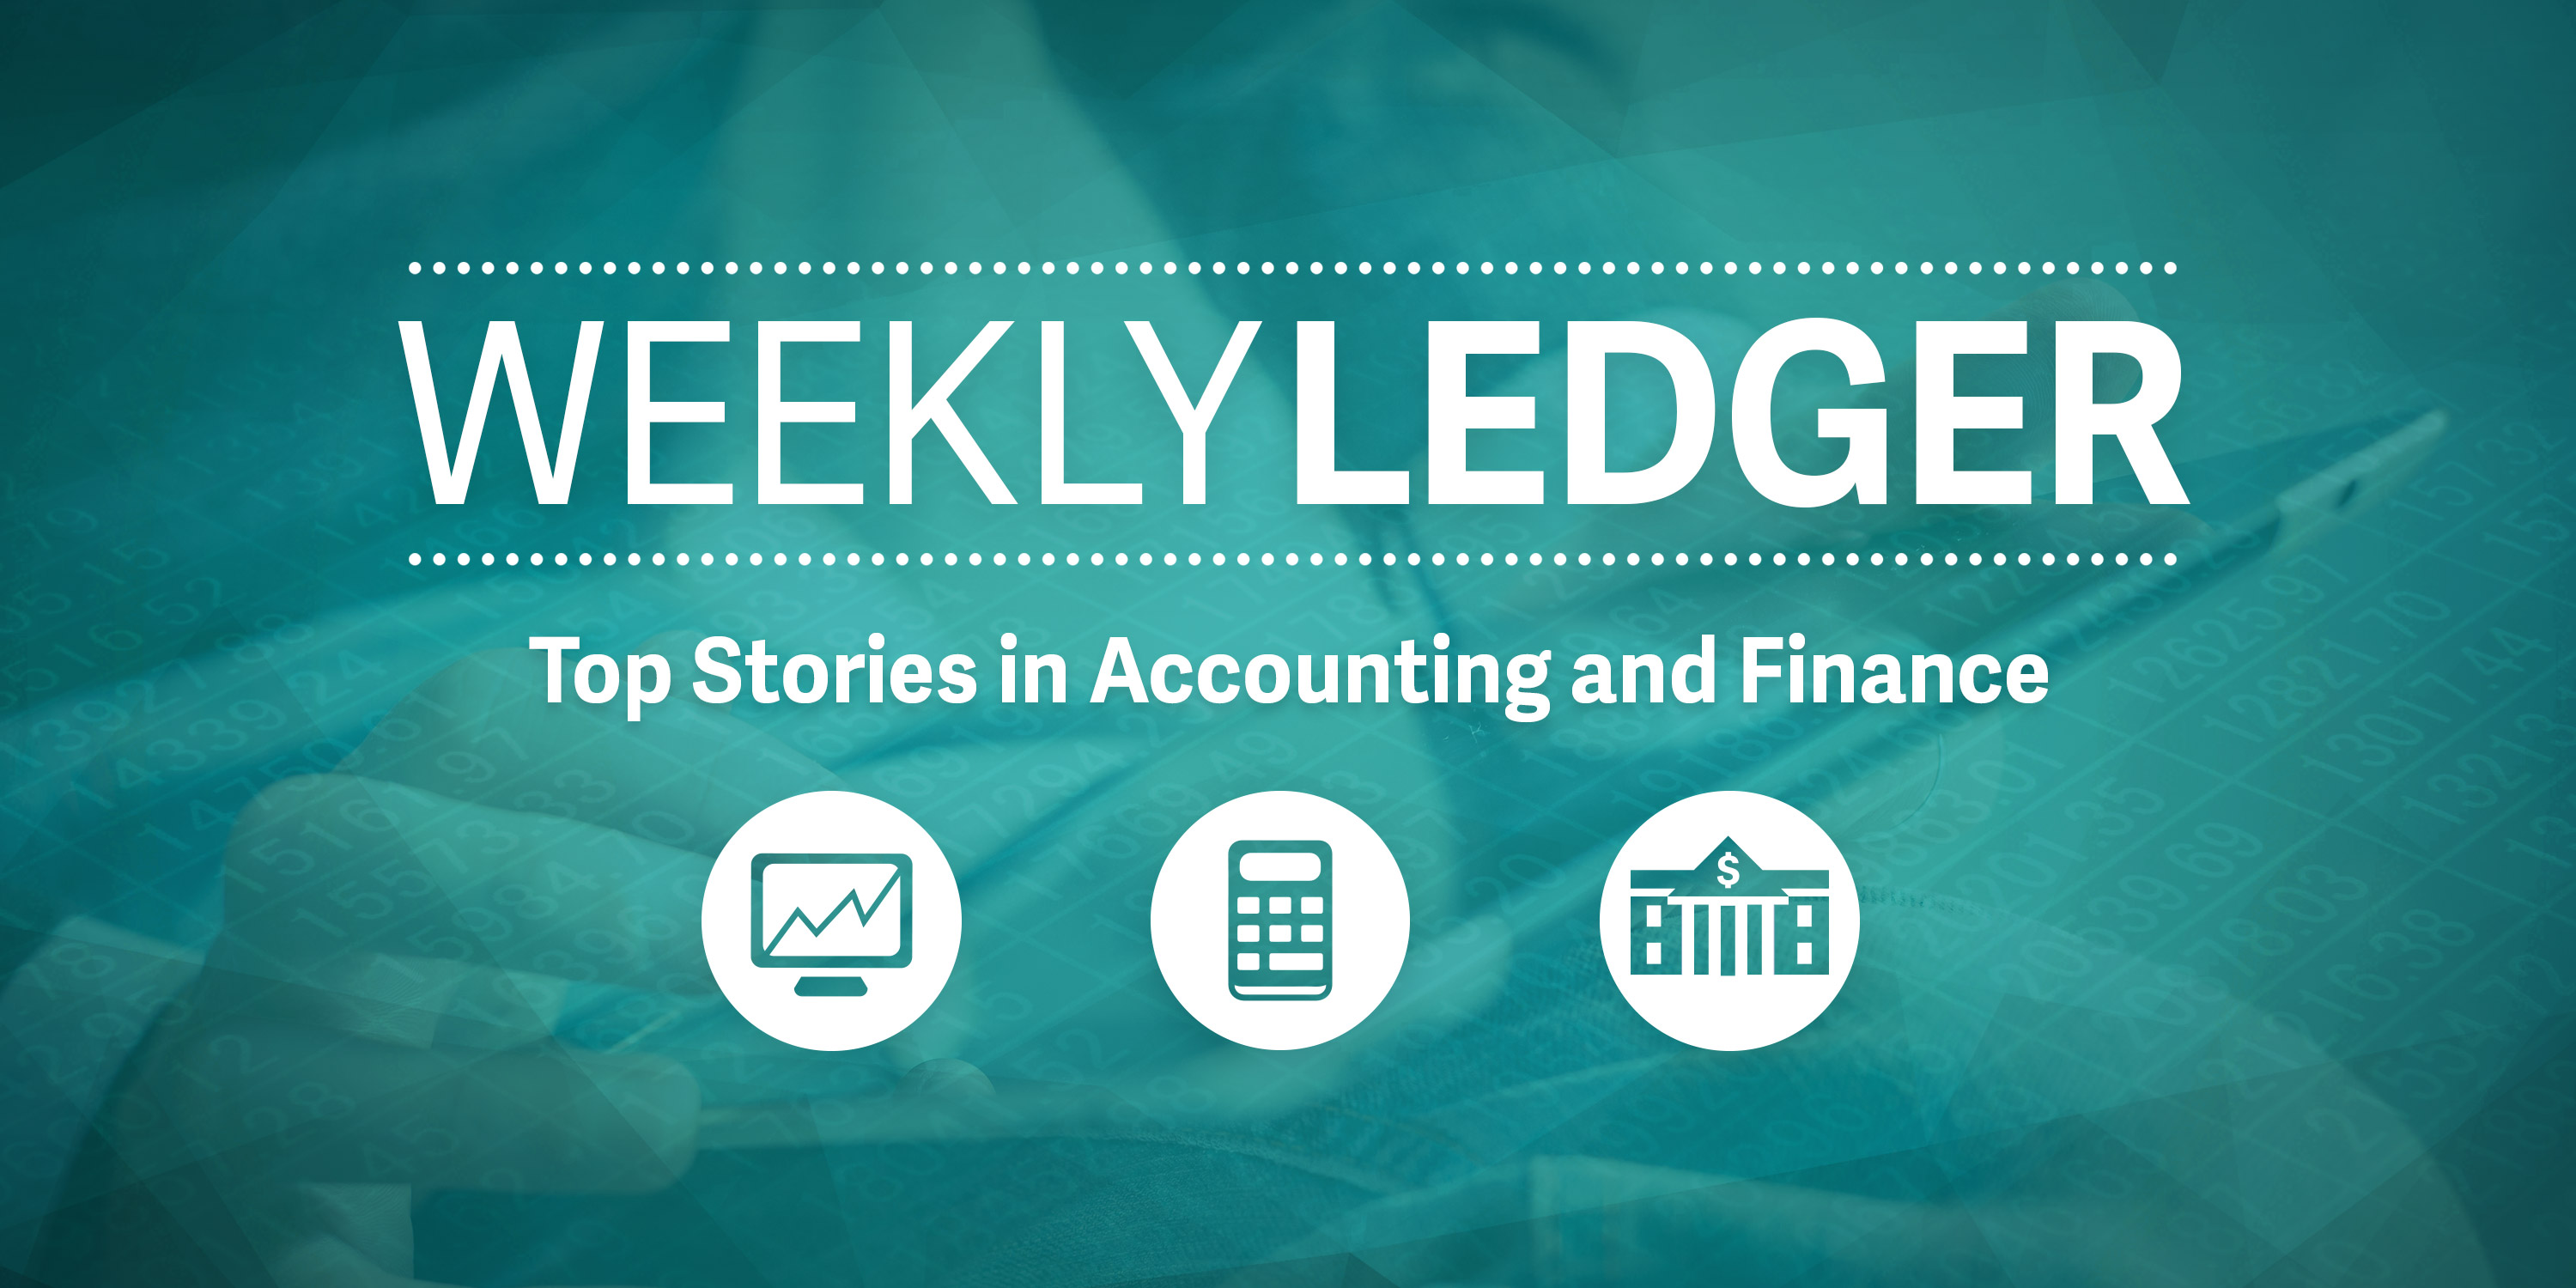 Weekly_Ledger_Teal-2.jpg